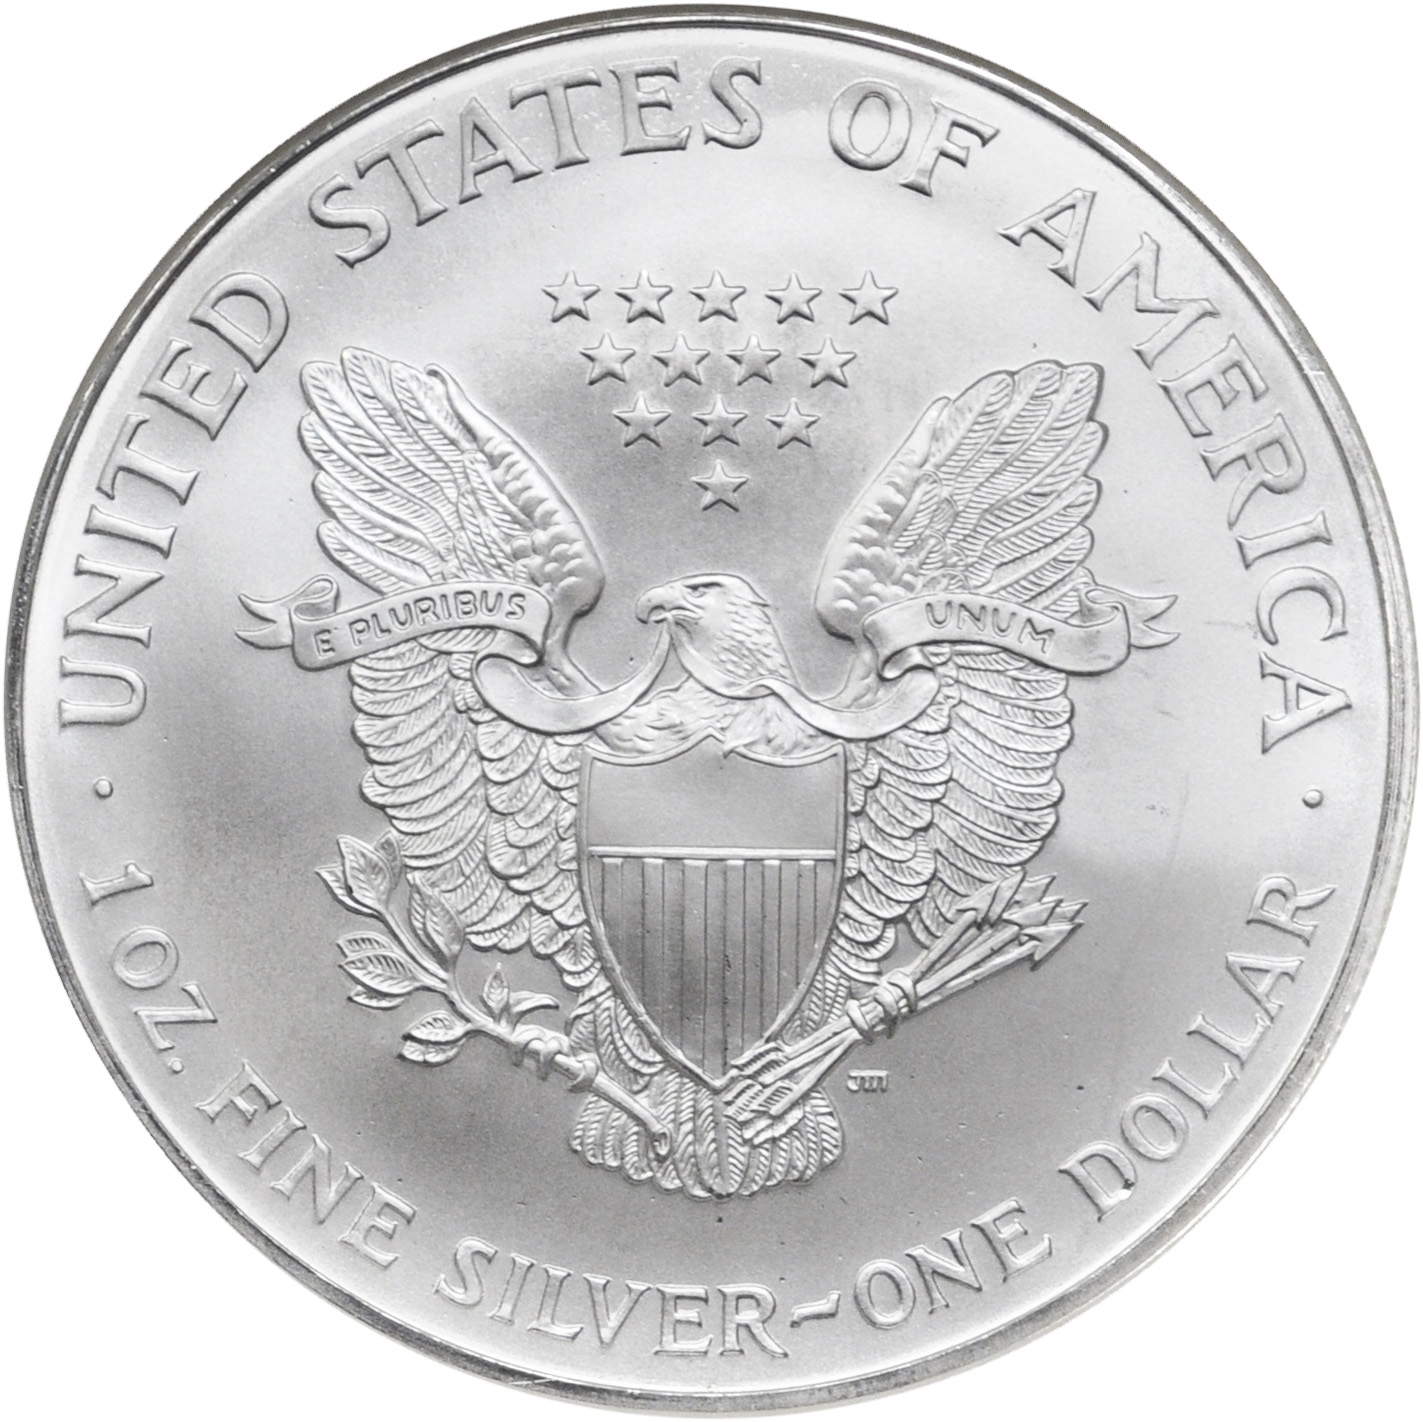 Value Of 2000 1 Silver Coin American